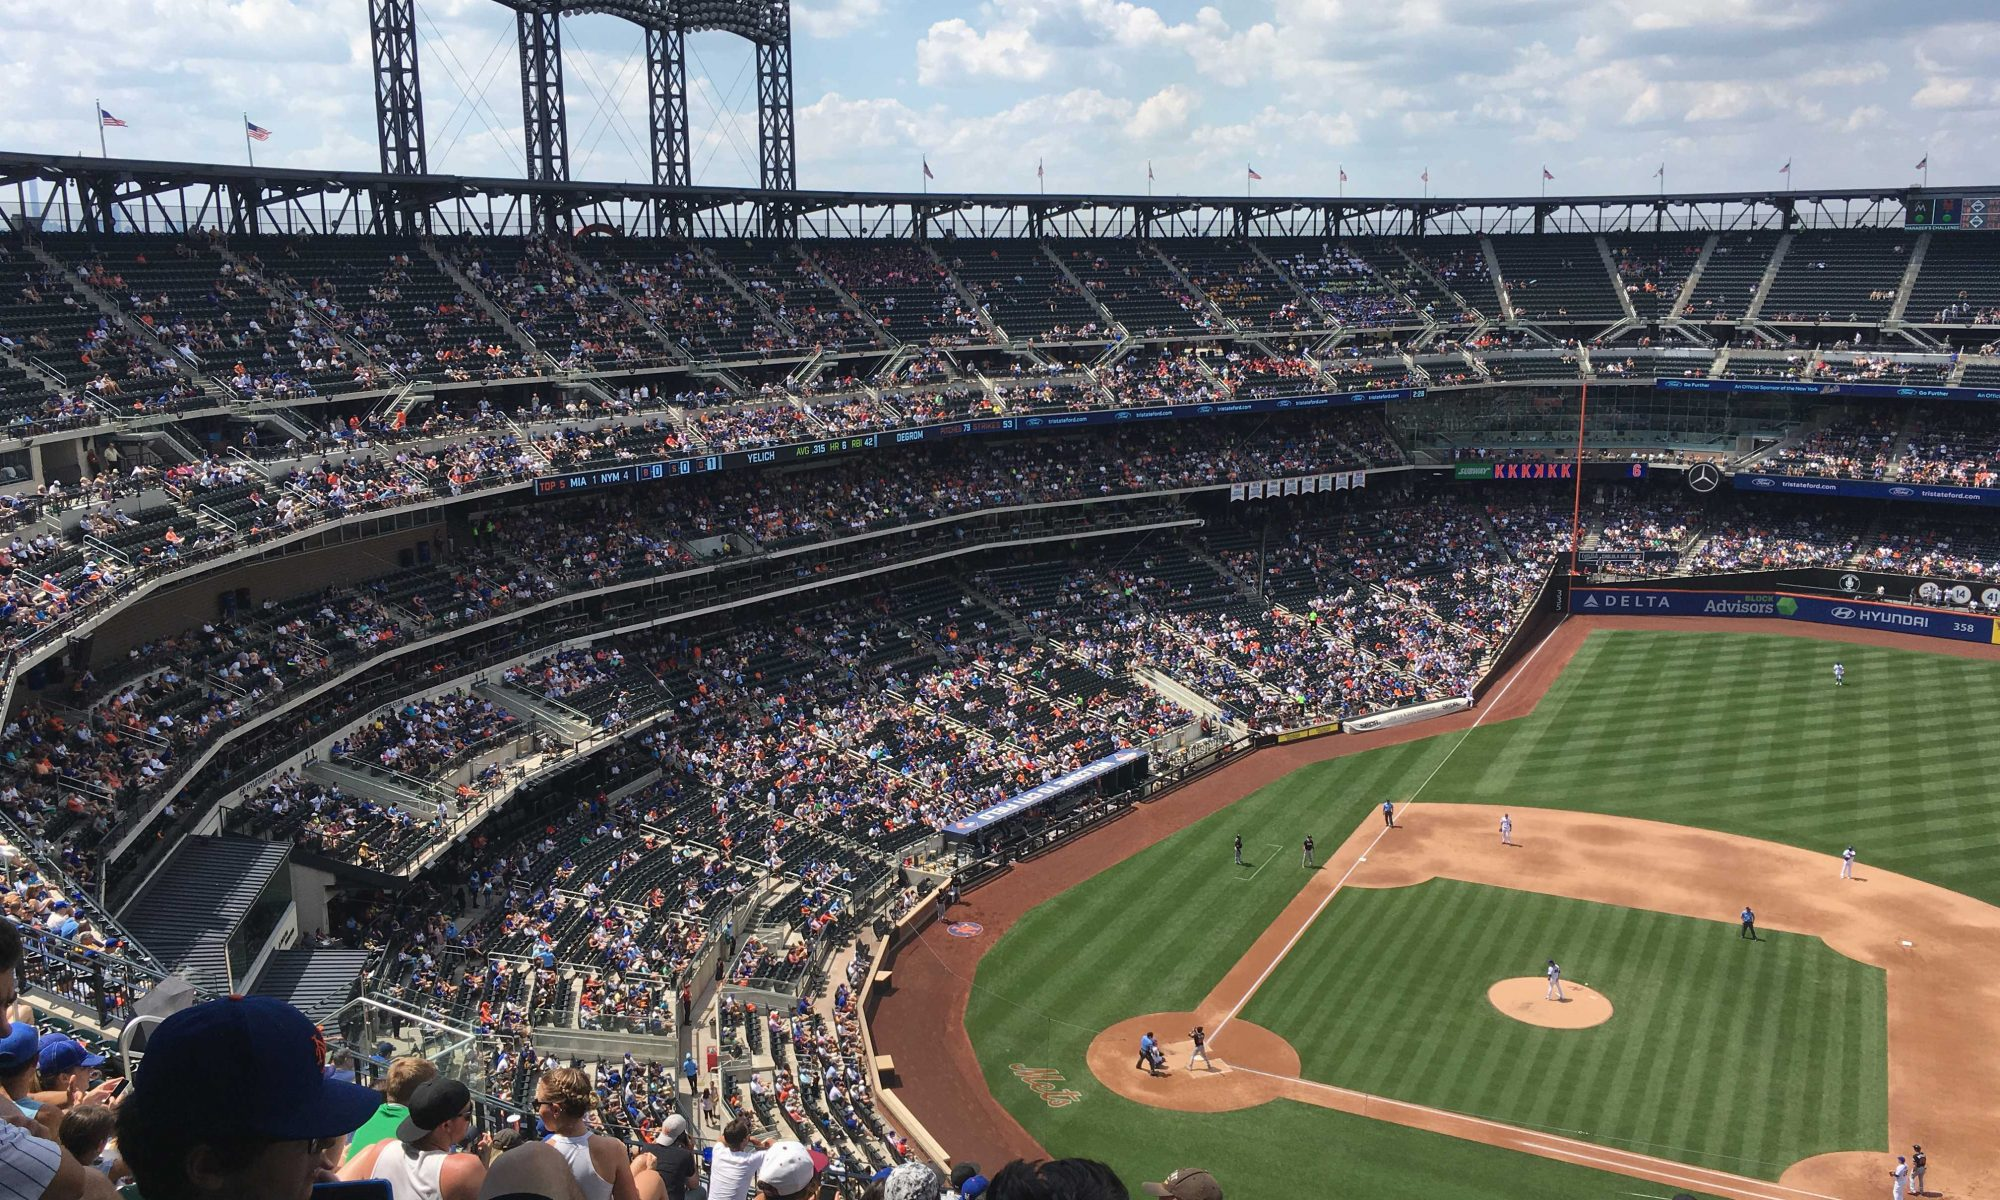 NY Mets game, summer 2016